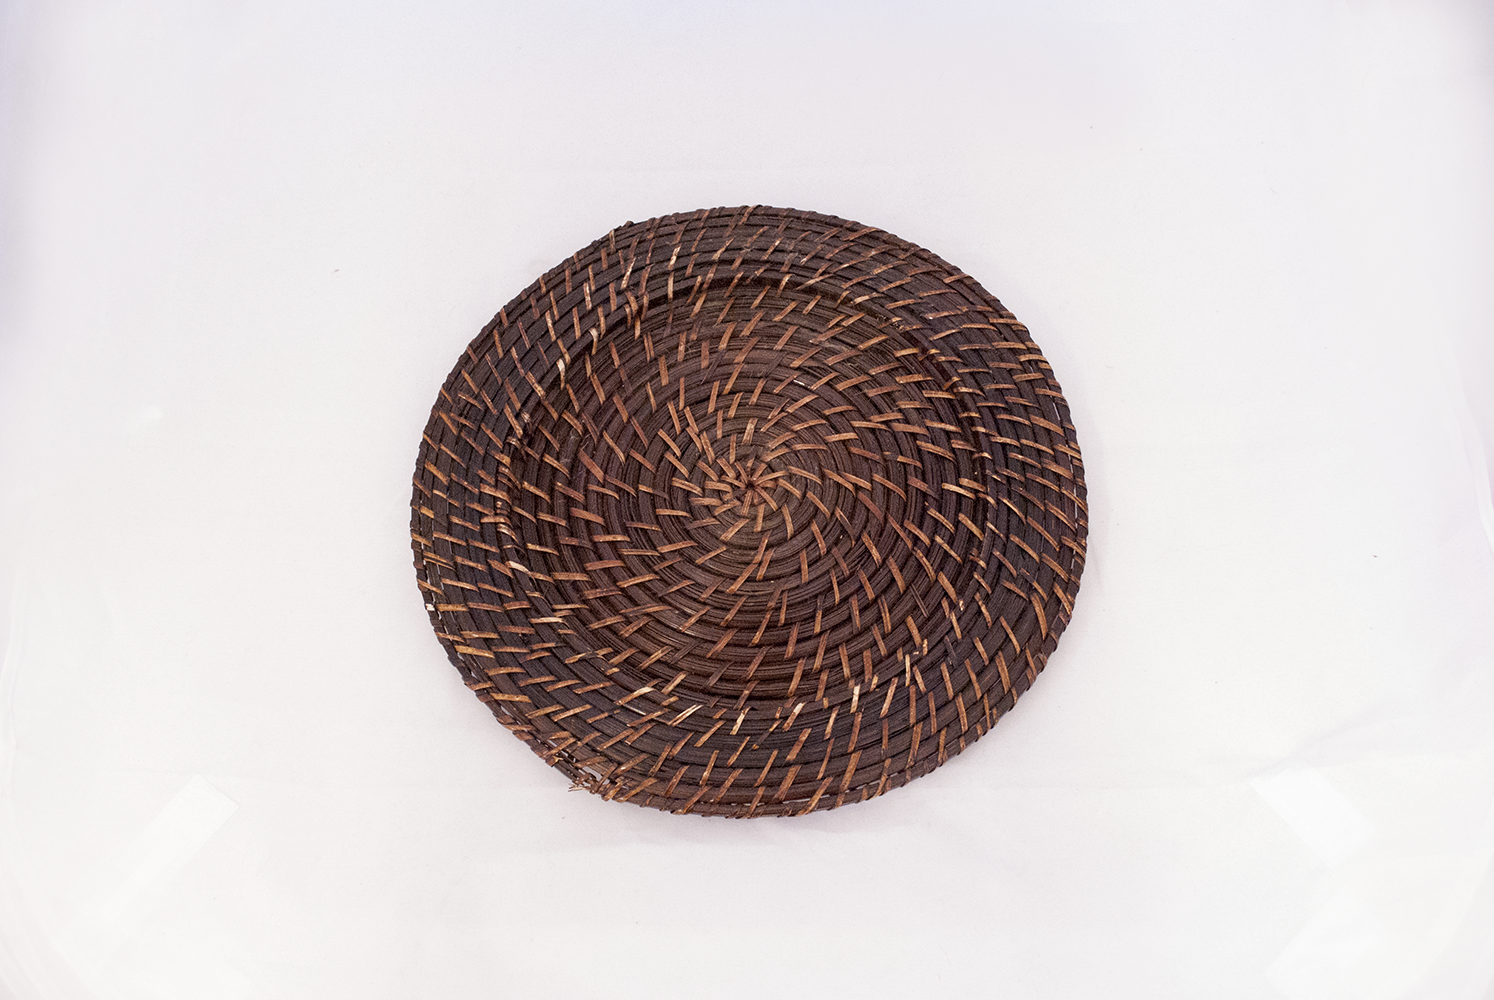 rattan charger (small)   Quantity: 178  Price: $4.50